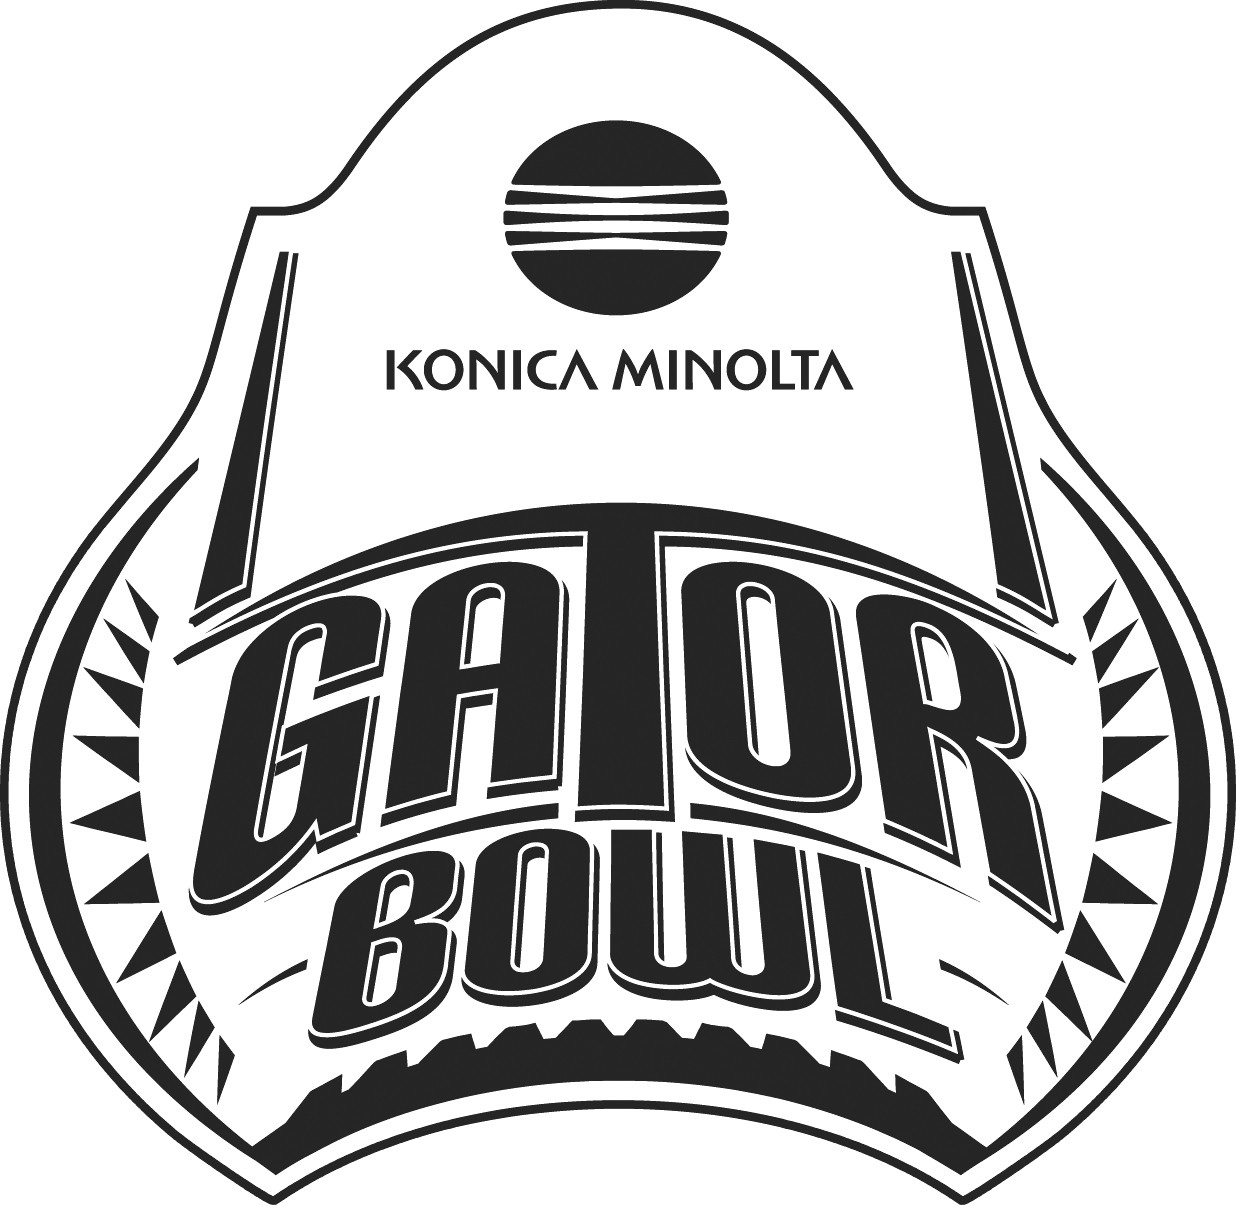 college football fans and teams gear up for 2010 konica minolta